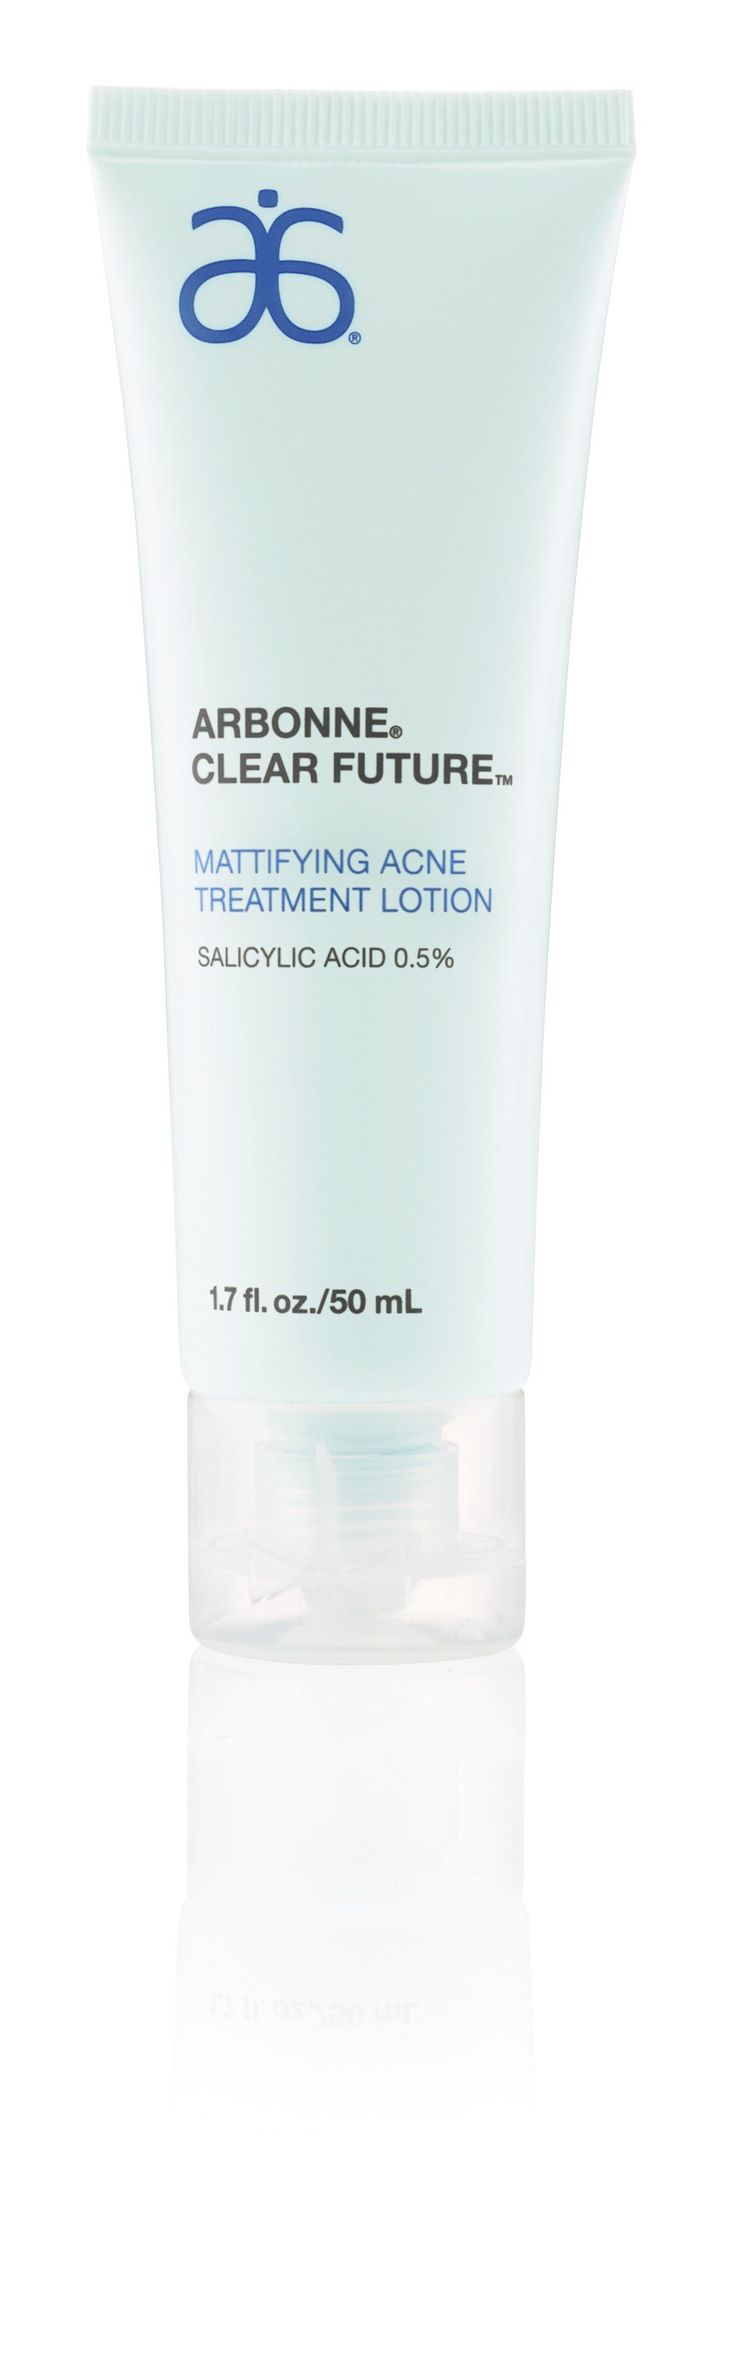 "Facing some problems? <strong><a href=""http://www.arbonne.com/pws/homeoffice/store/amus/product/Mattifying-Acne-Treatment-Lotion-4414,8588,1118.aspx"">Arbonne Clear Future Mattifying Acne Treatment Lotion</a> </strong>helps treat chronic skin issues like acne or rosacea. This acne treatment lotion contains salicylic acid which dries and clears acne blemishes, joining forces with a lightweight, no..."